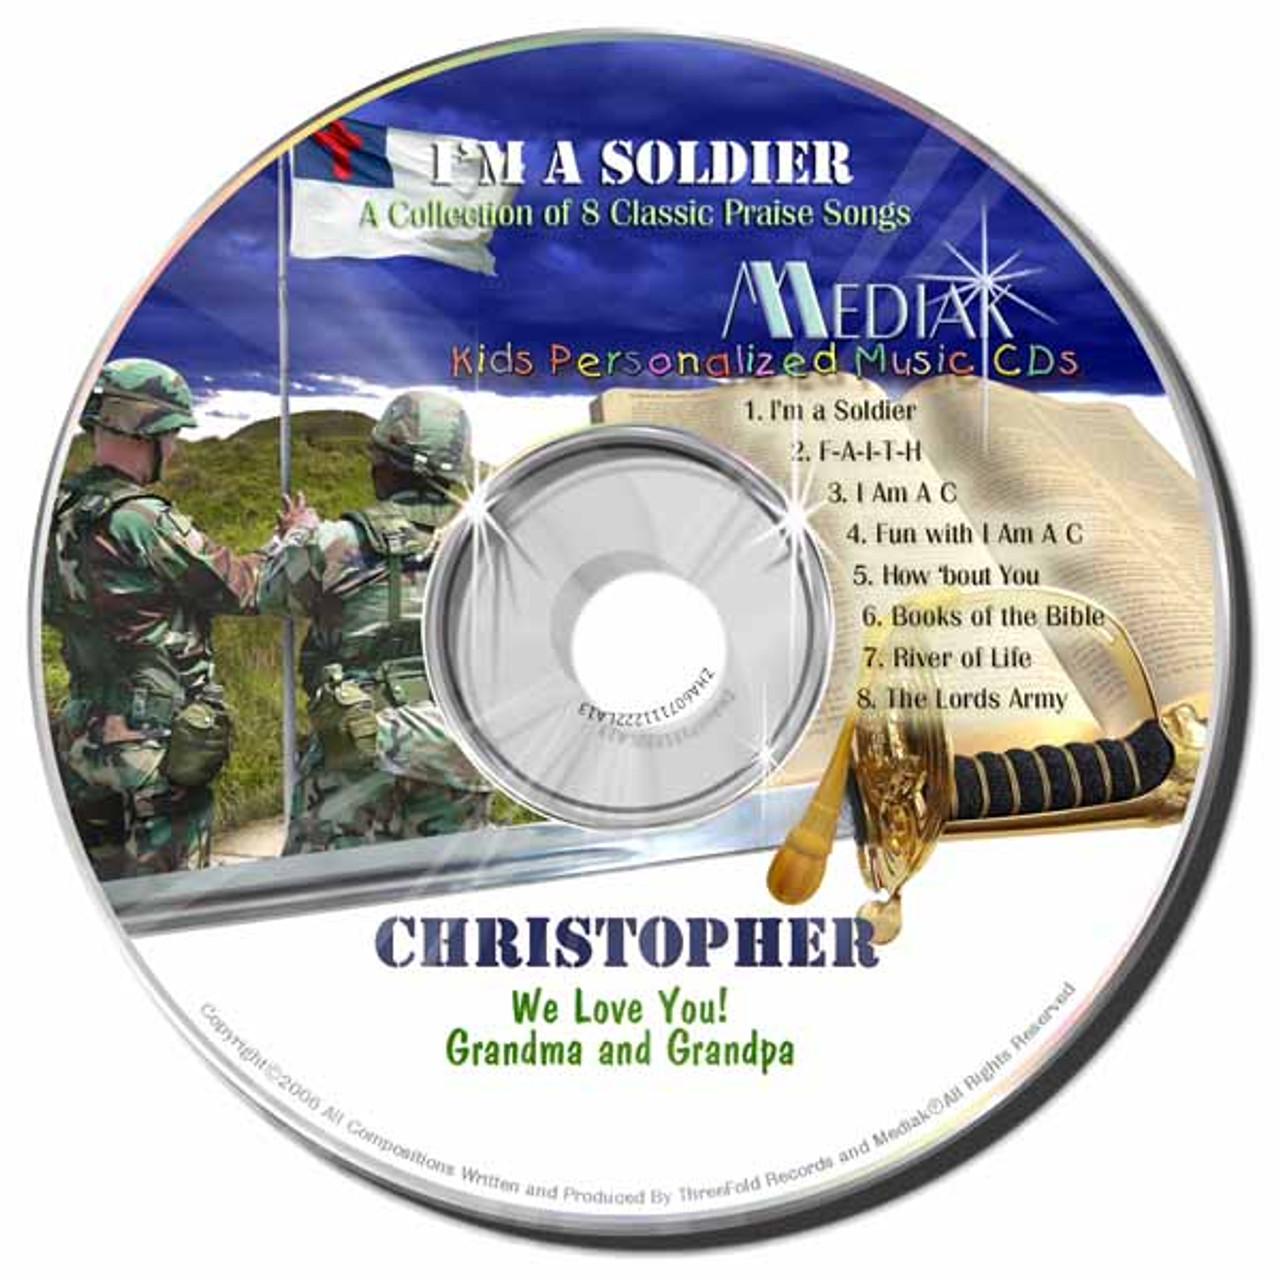 I am a Soldier Personalized Kids Music CD